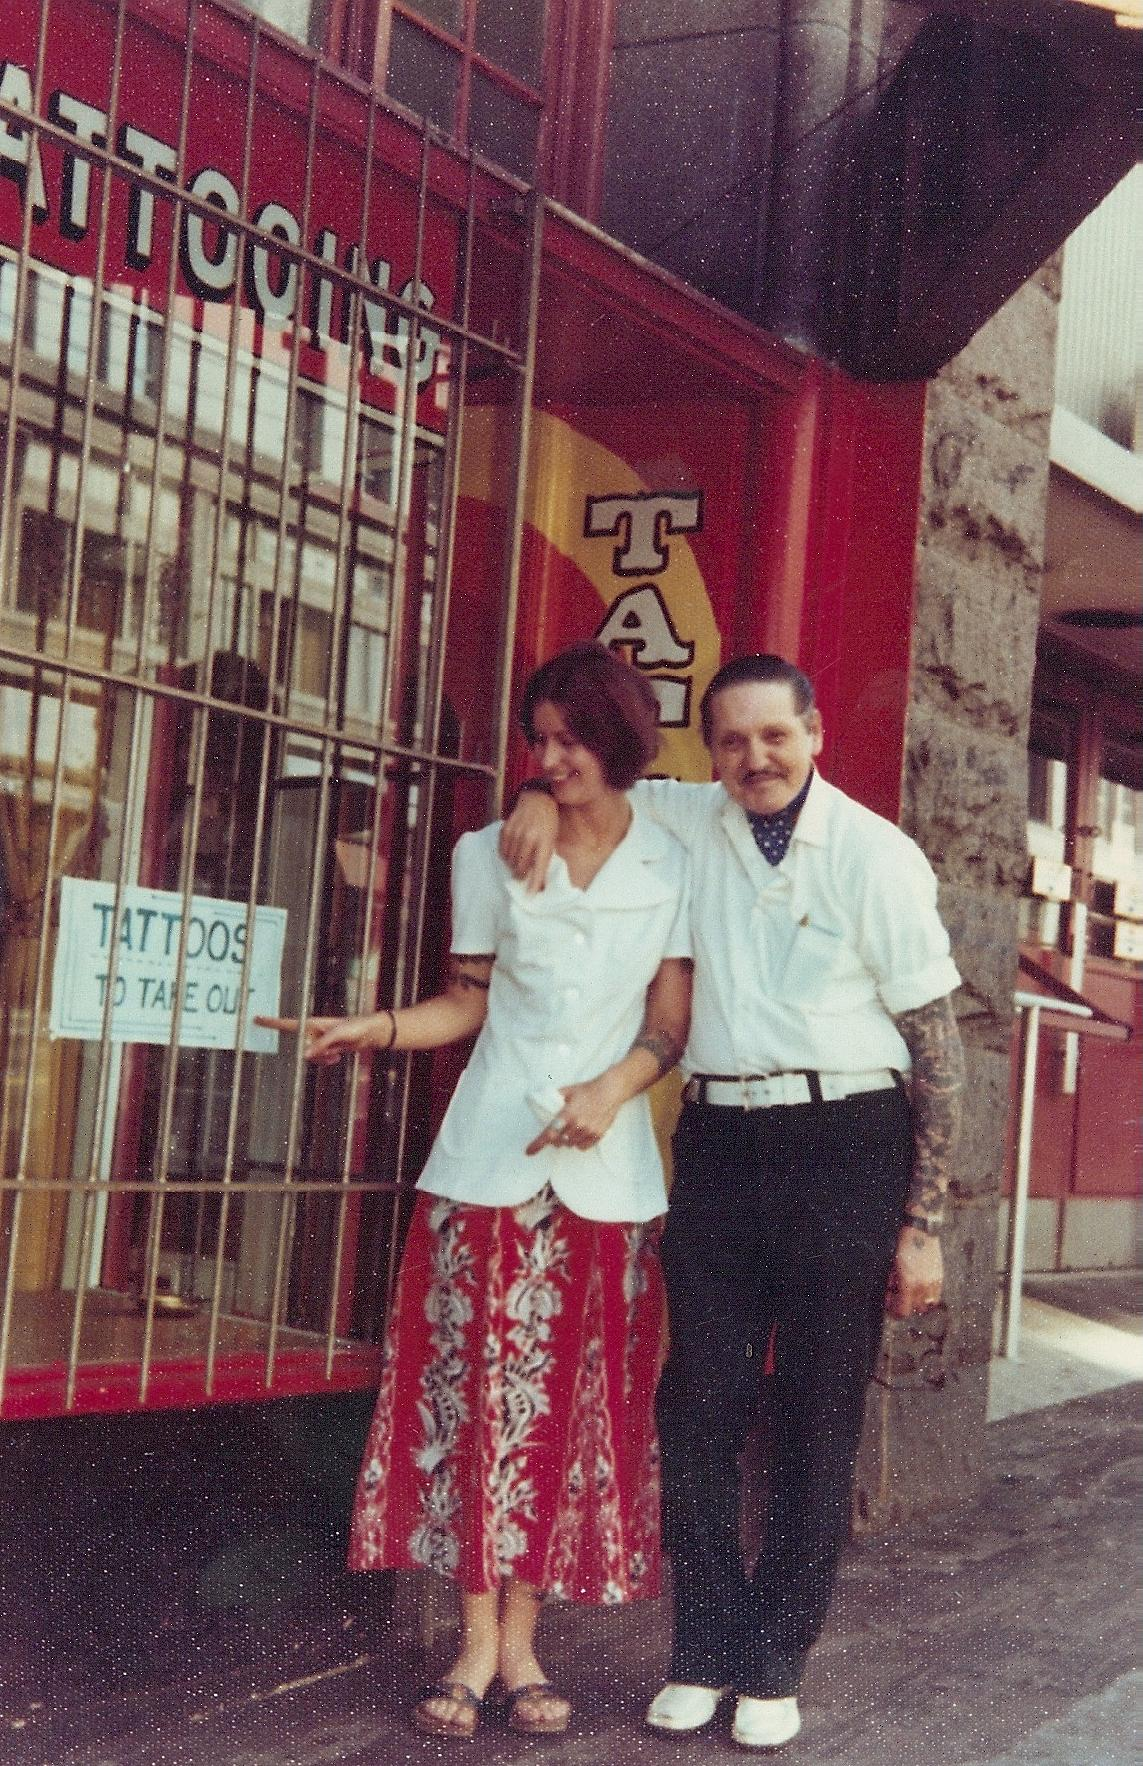 "<p>Vyvyn ""Madame"" Lazonga stands with mentor C.J. ""Danny"" Danzel outside of his tattoo parlor in Seattle in the '70s. (Image: Vyvyn Lazonga)</p>"